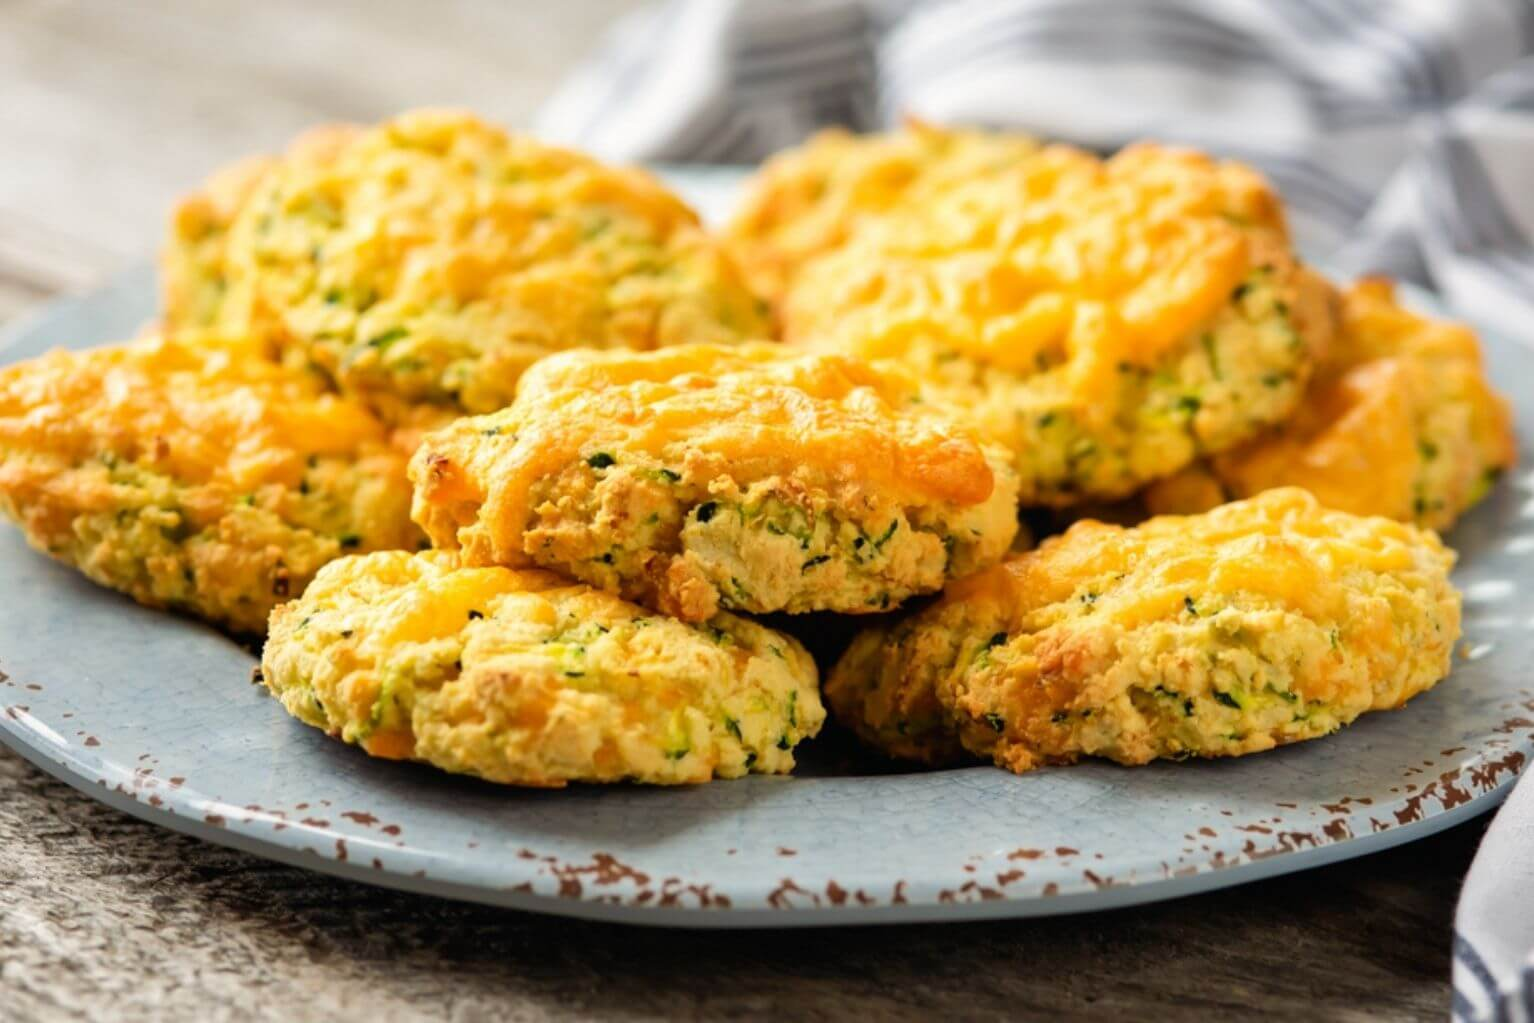 Grain-free cheddar and zucchini scones on top of a blue plate next to a blue and white stripped napkin.